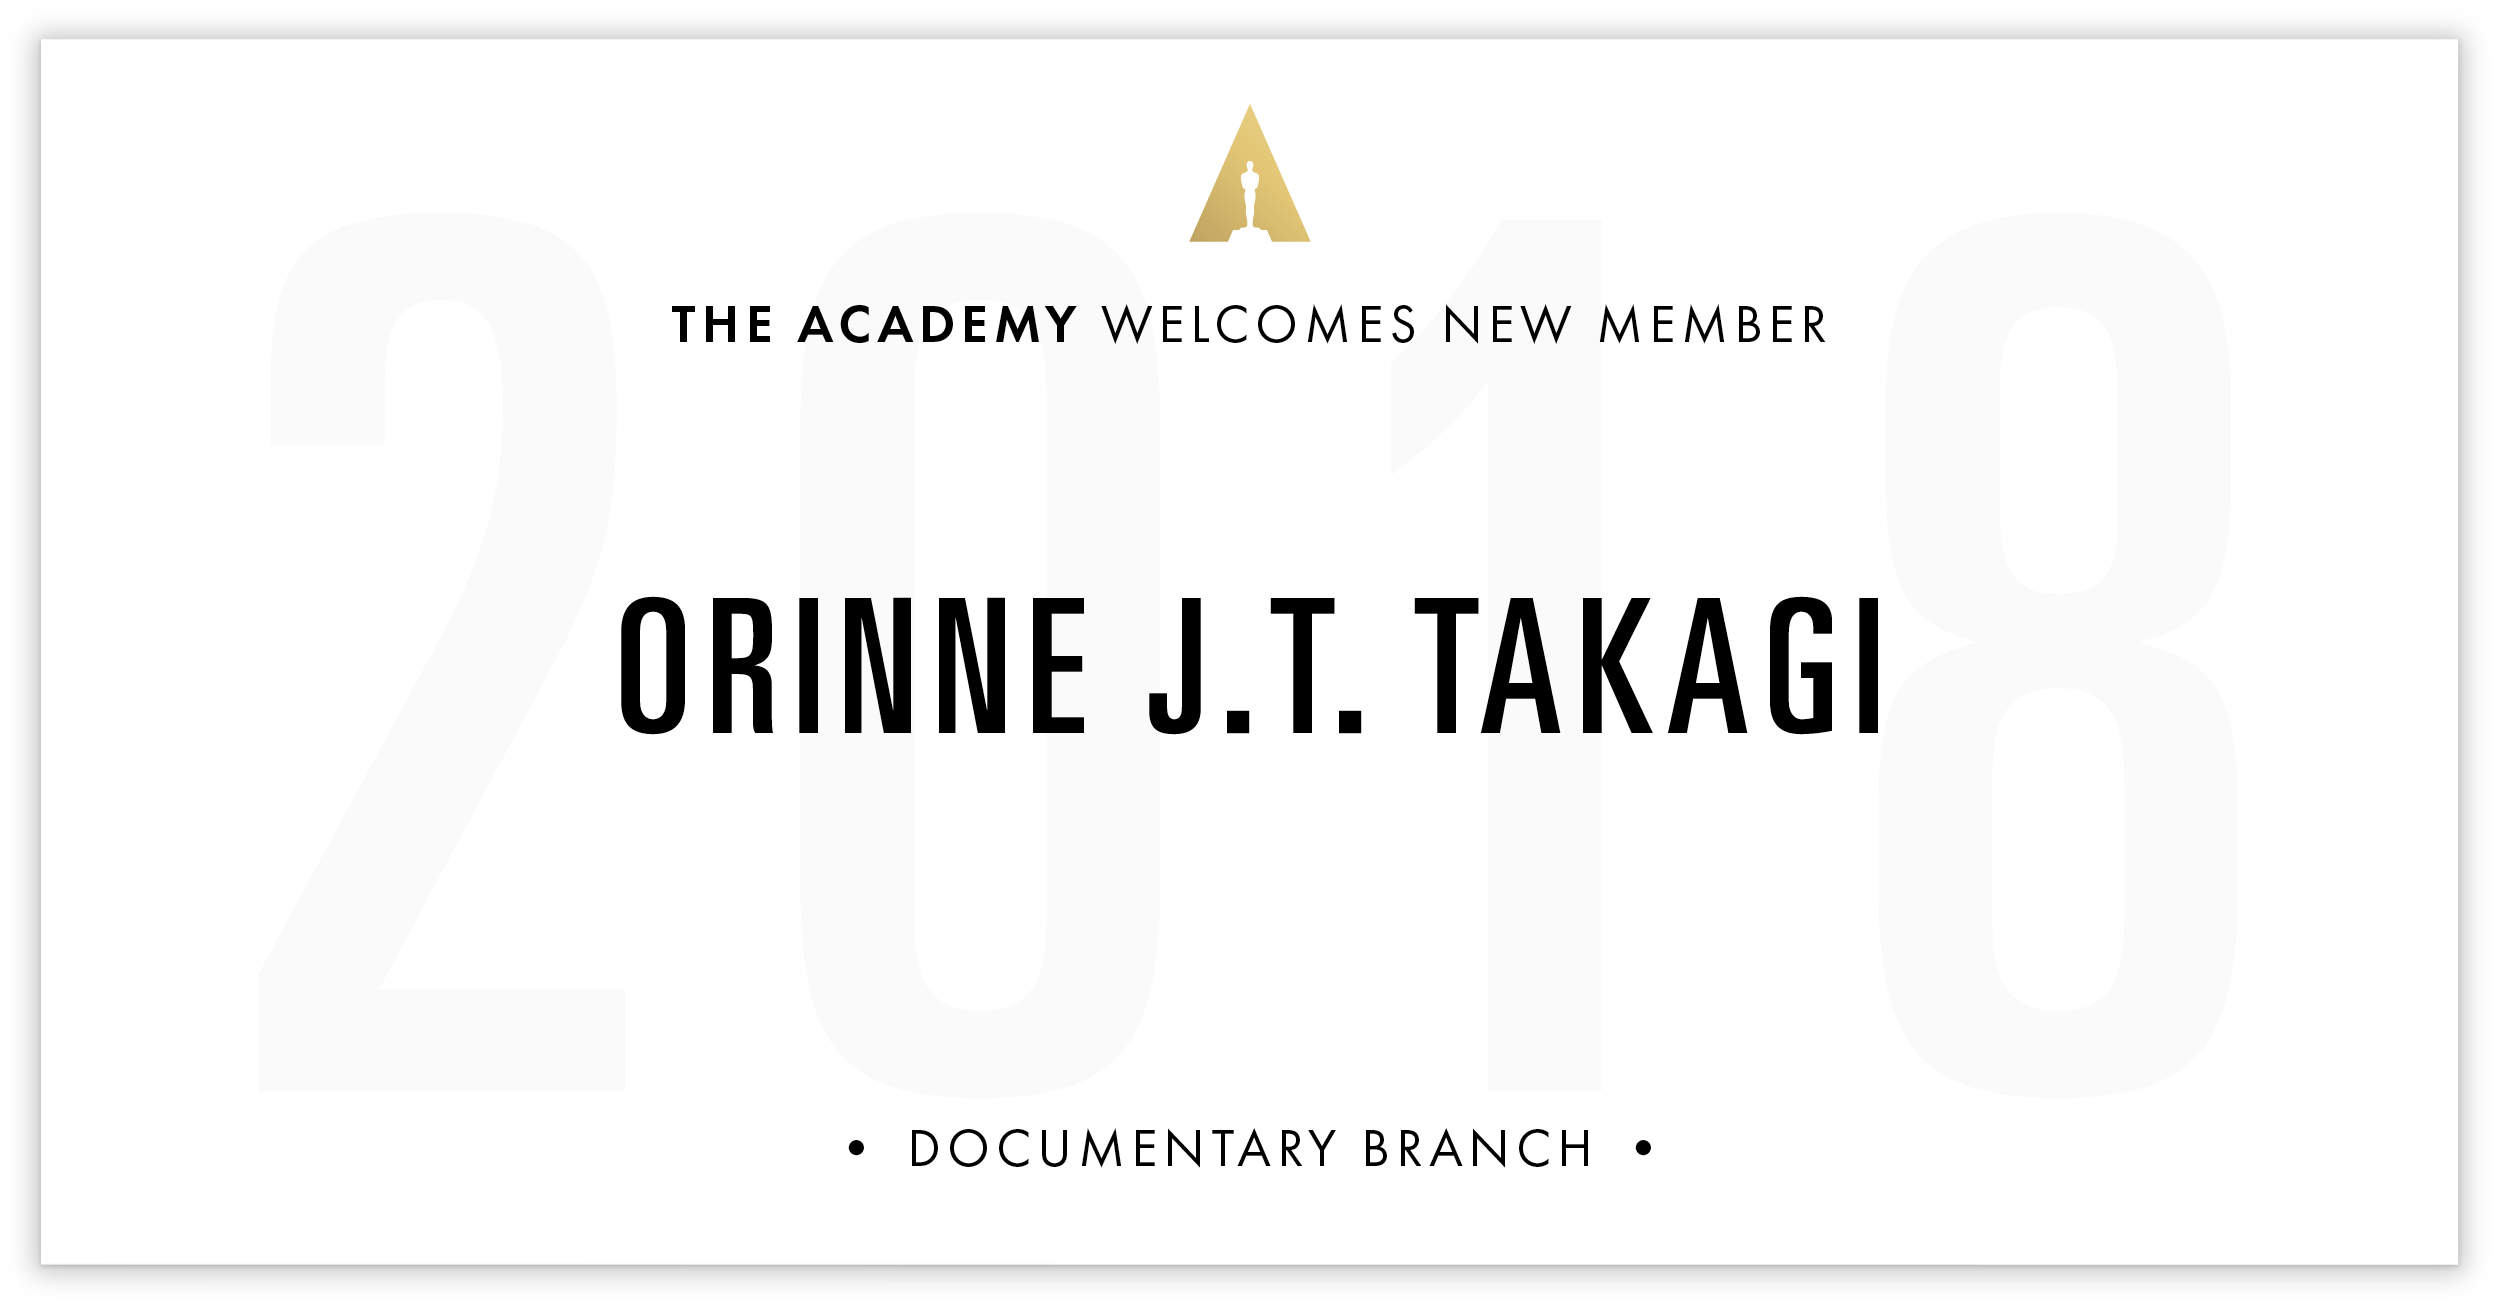 Orinne Takagi is invited!